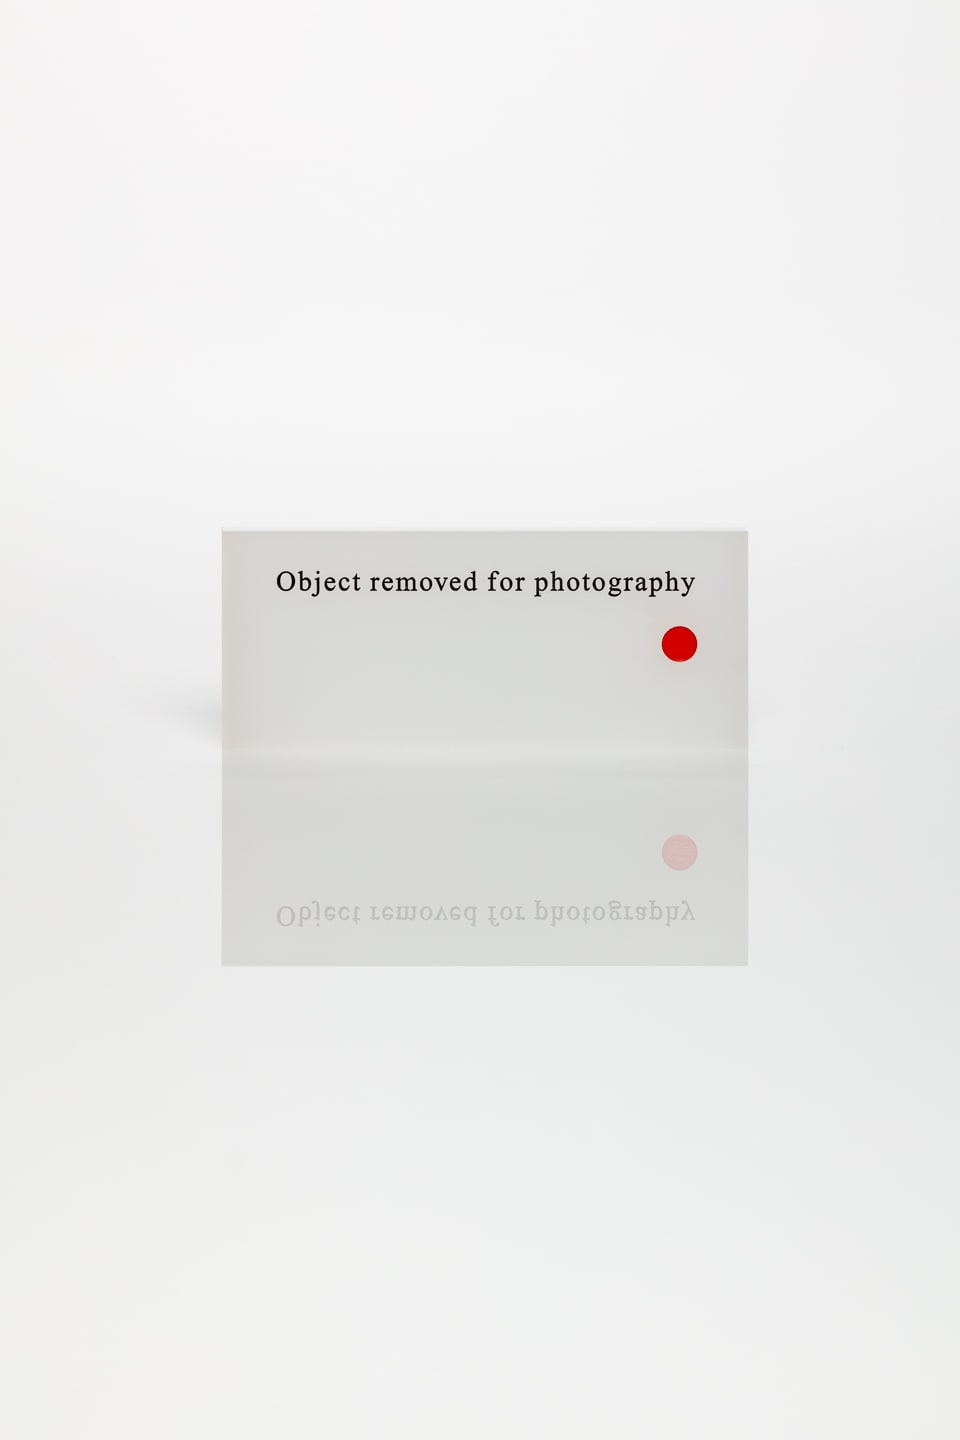 Anna Blessmann and Peter Saville Object removed for photography, 2008 Polar White, engraved text in filled in black, warm red dot. Accompanied by a signed certificate. 5 x 12 x 0.3 cm Edition of 10